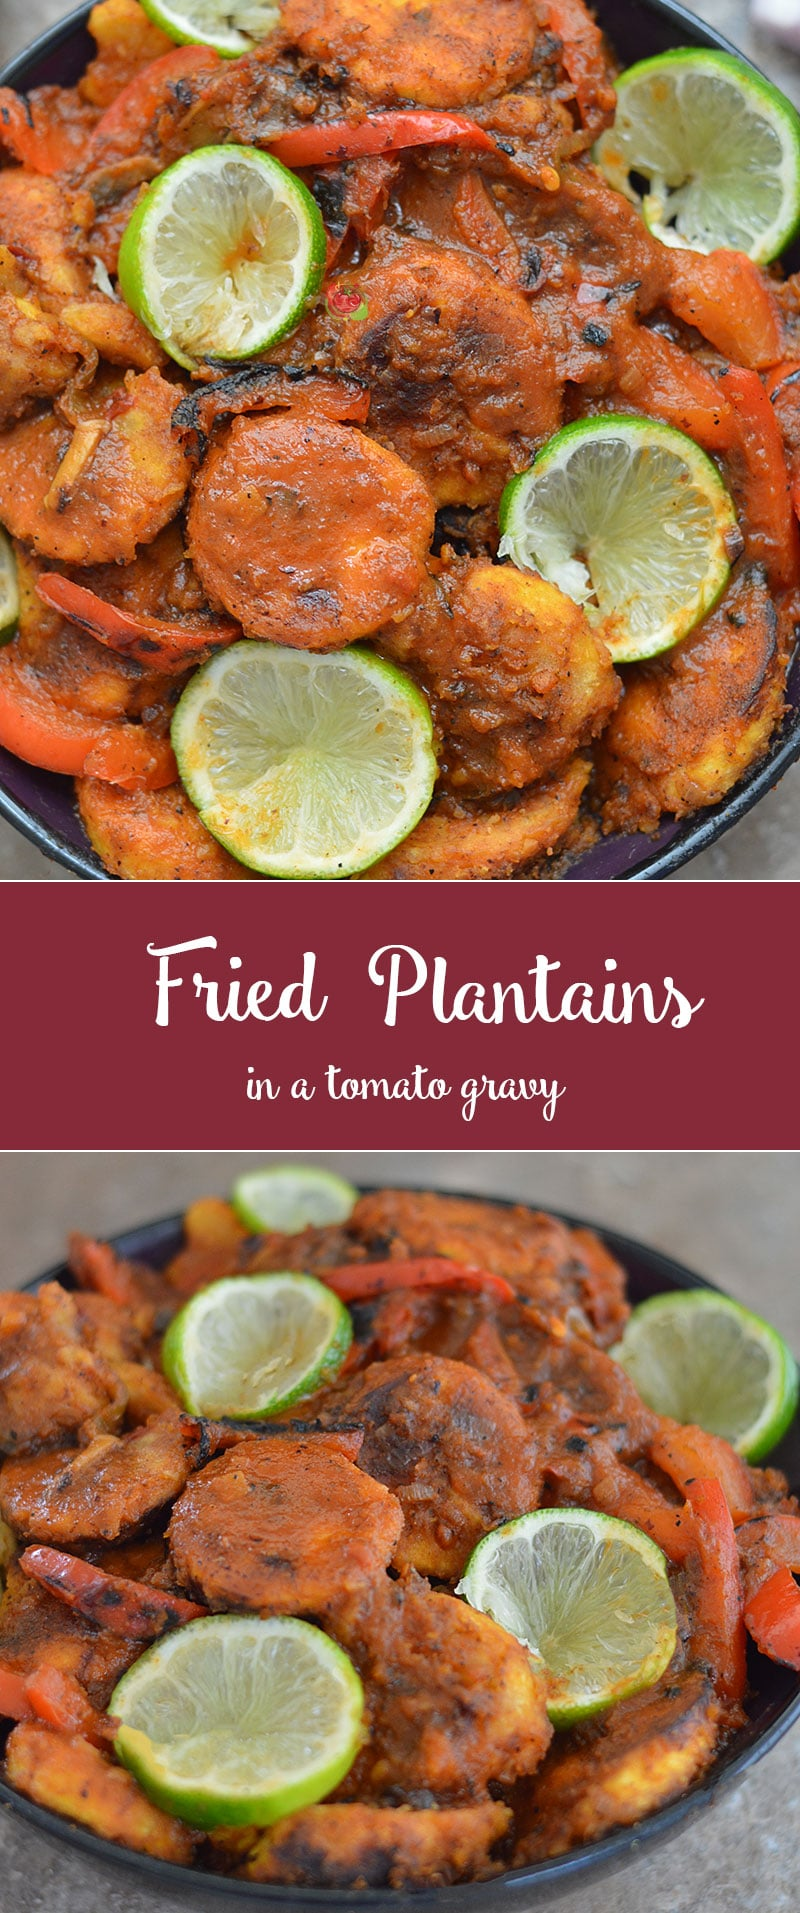 Fried Plantains in a tomato gravy made with African flavors. It's a hearty vegan dinner recipe made with fresh green plantains. Serve with rice by itself